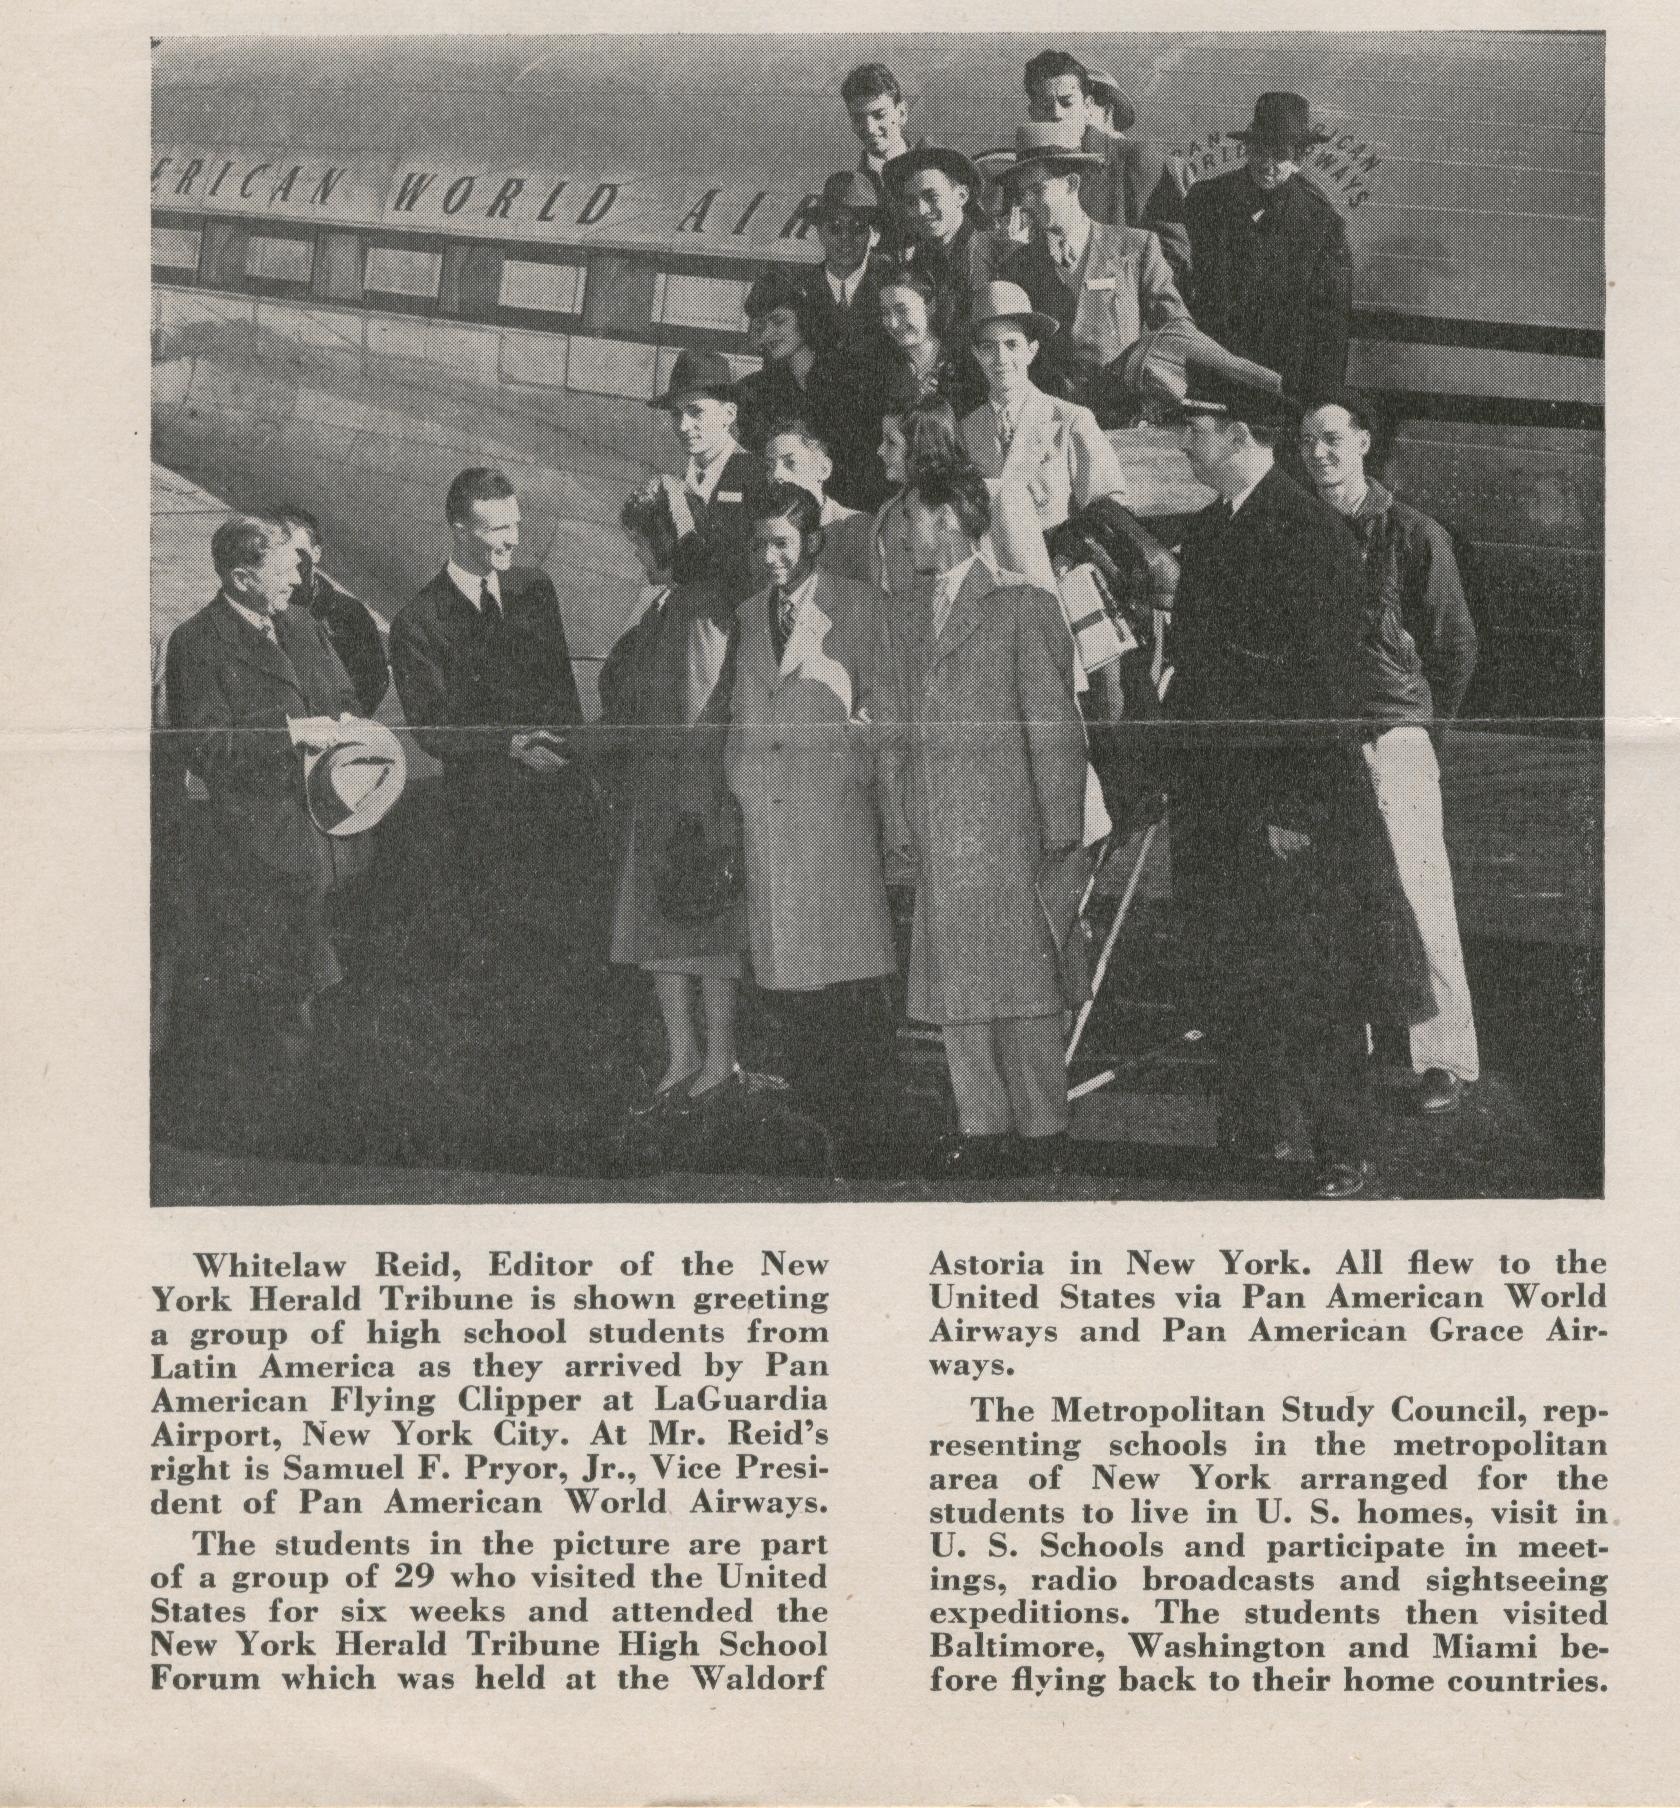 1947 Pan Am Vice President Sam Pryor greeting Latin American exchange students at New York LaGuardia airport